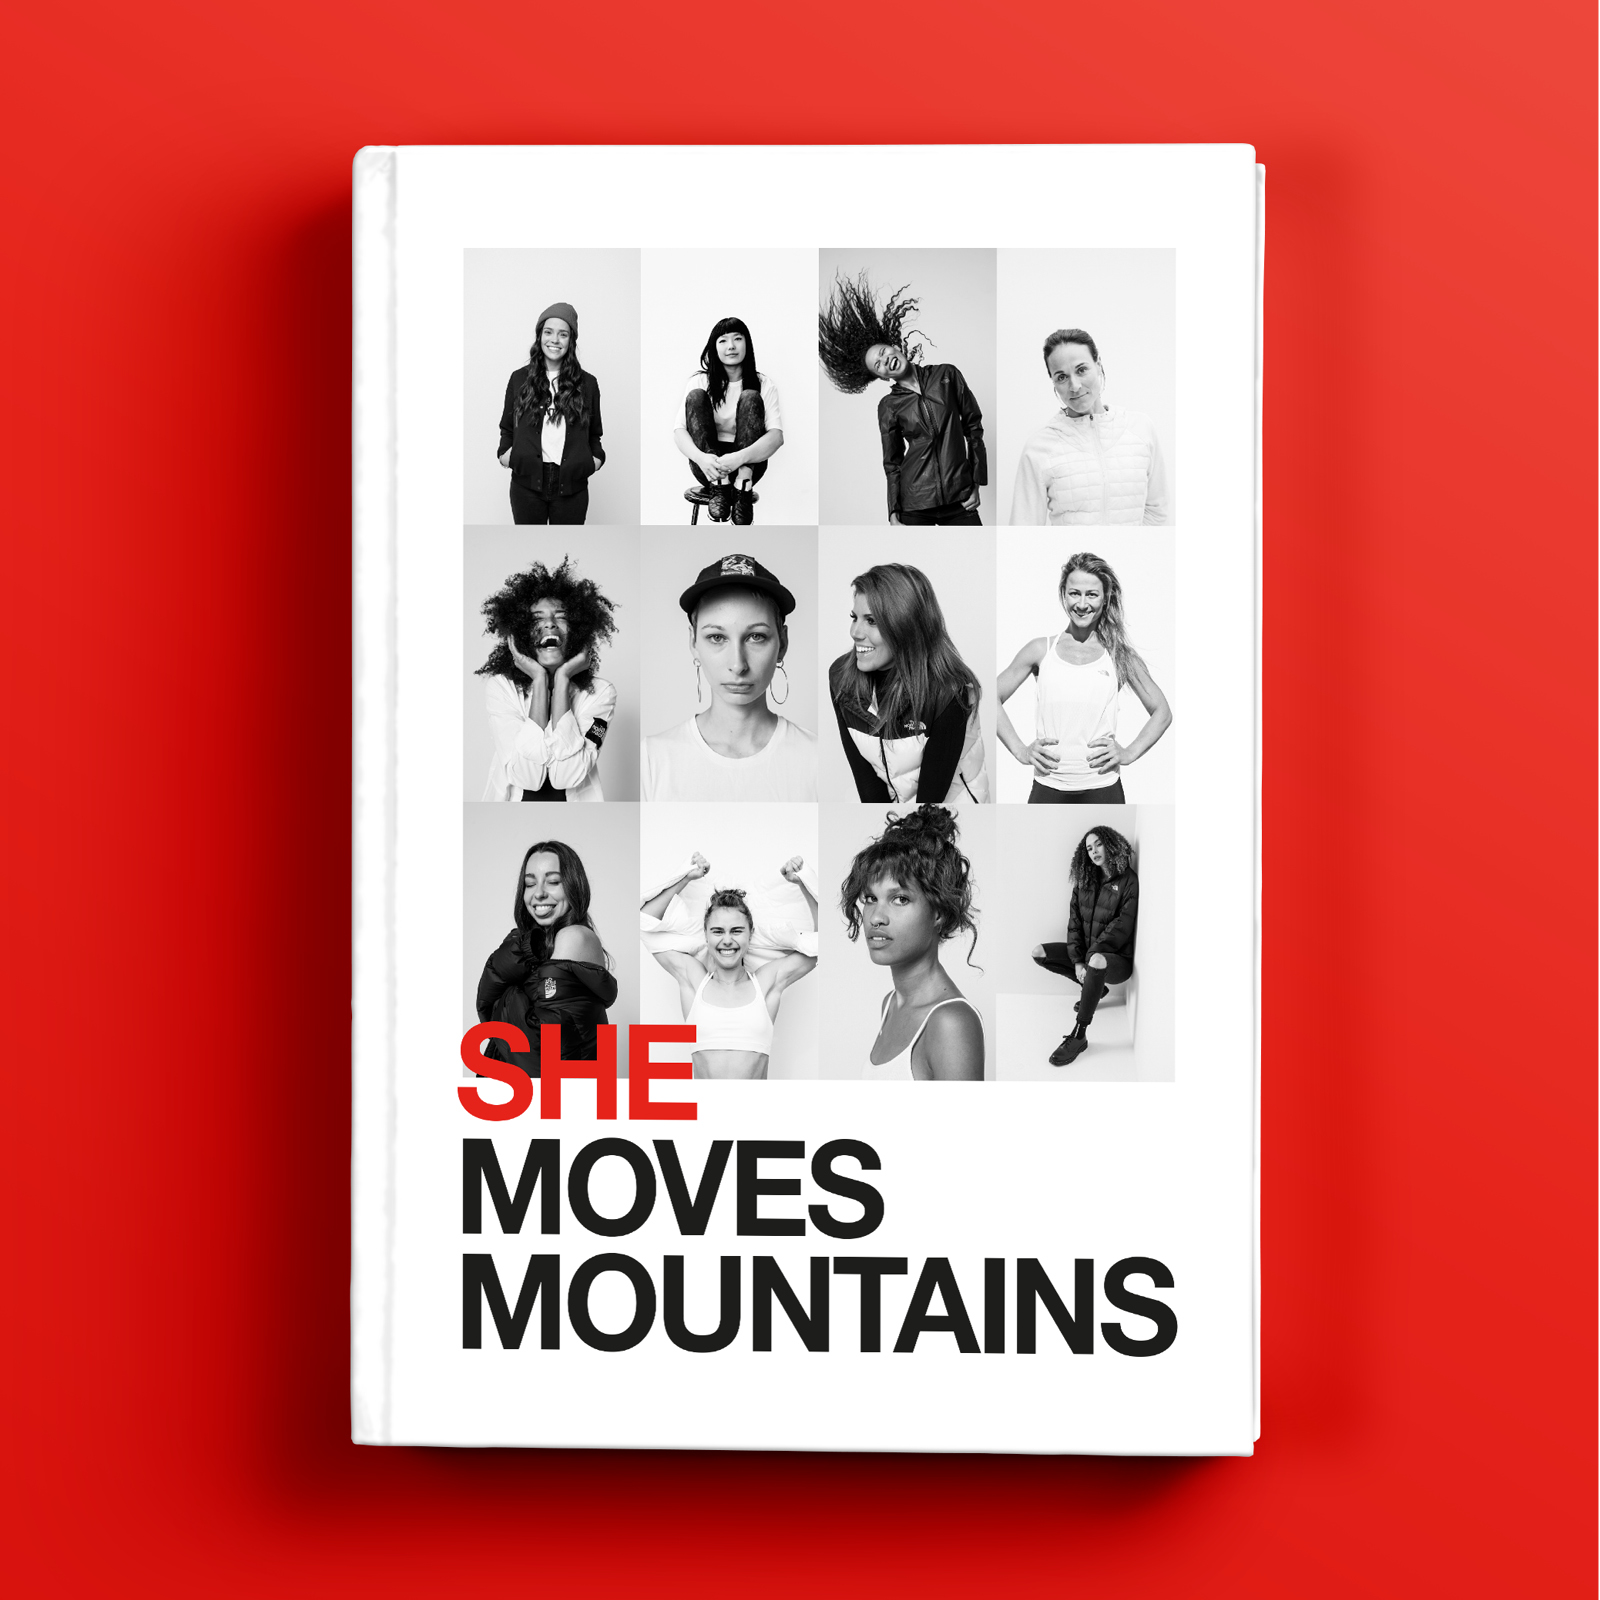 The North Face - She Moves Mountains   Art Direction   Design   By James-Lee Duffy